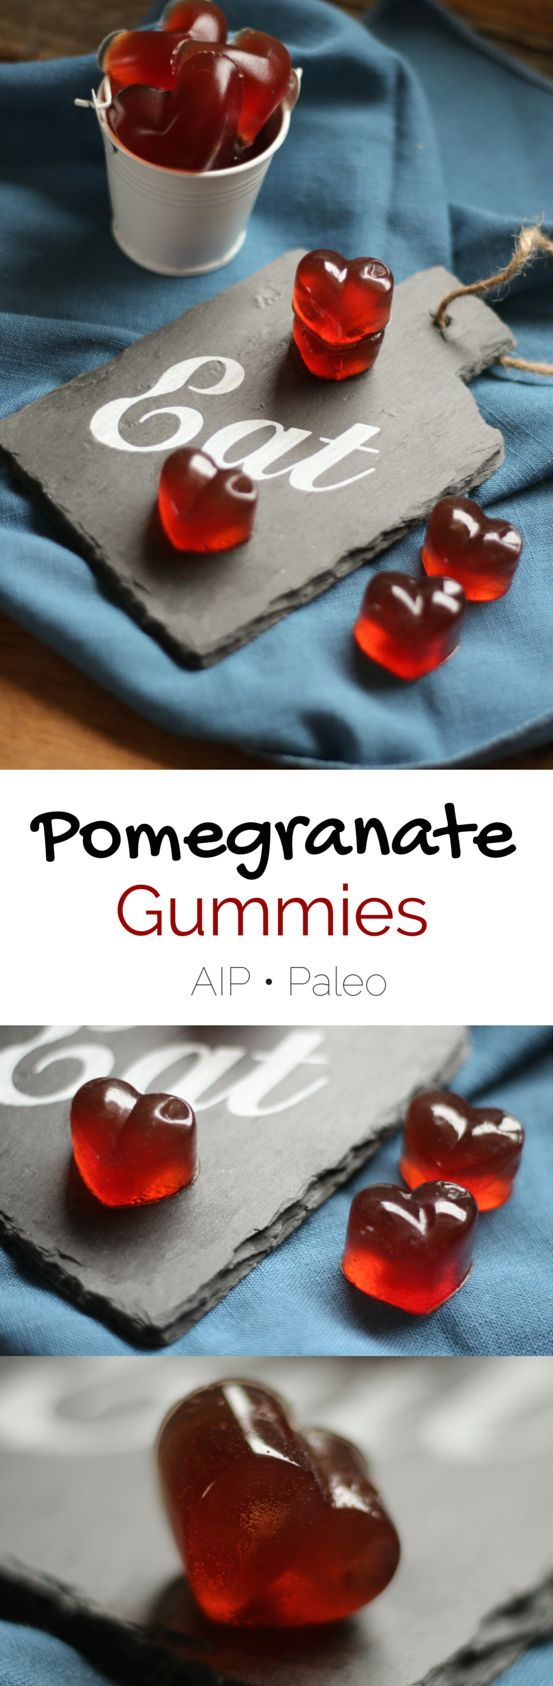 Pomegranate Gummies (AIP, Paleo)